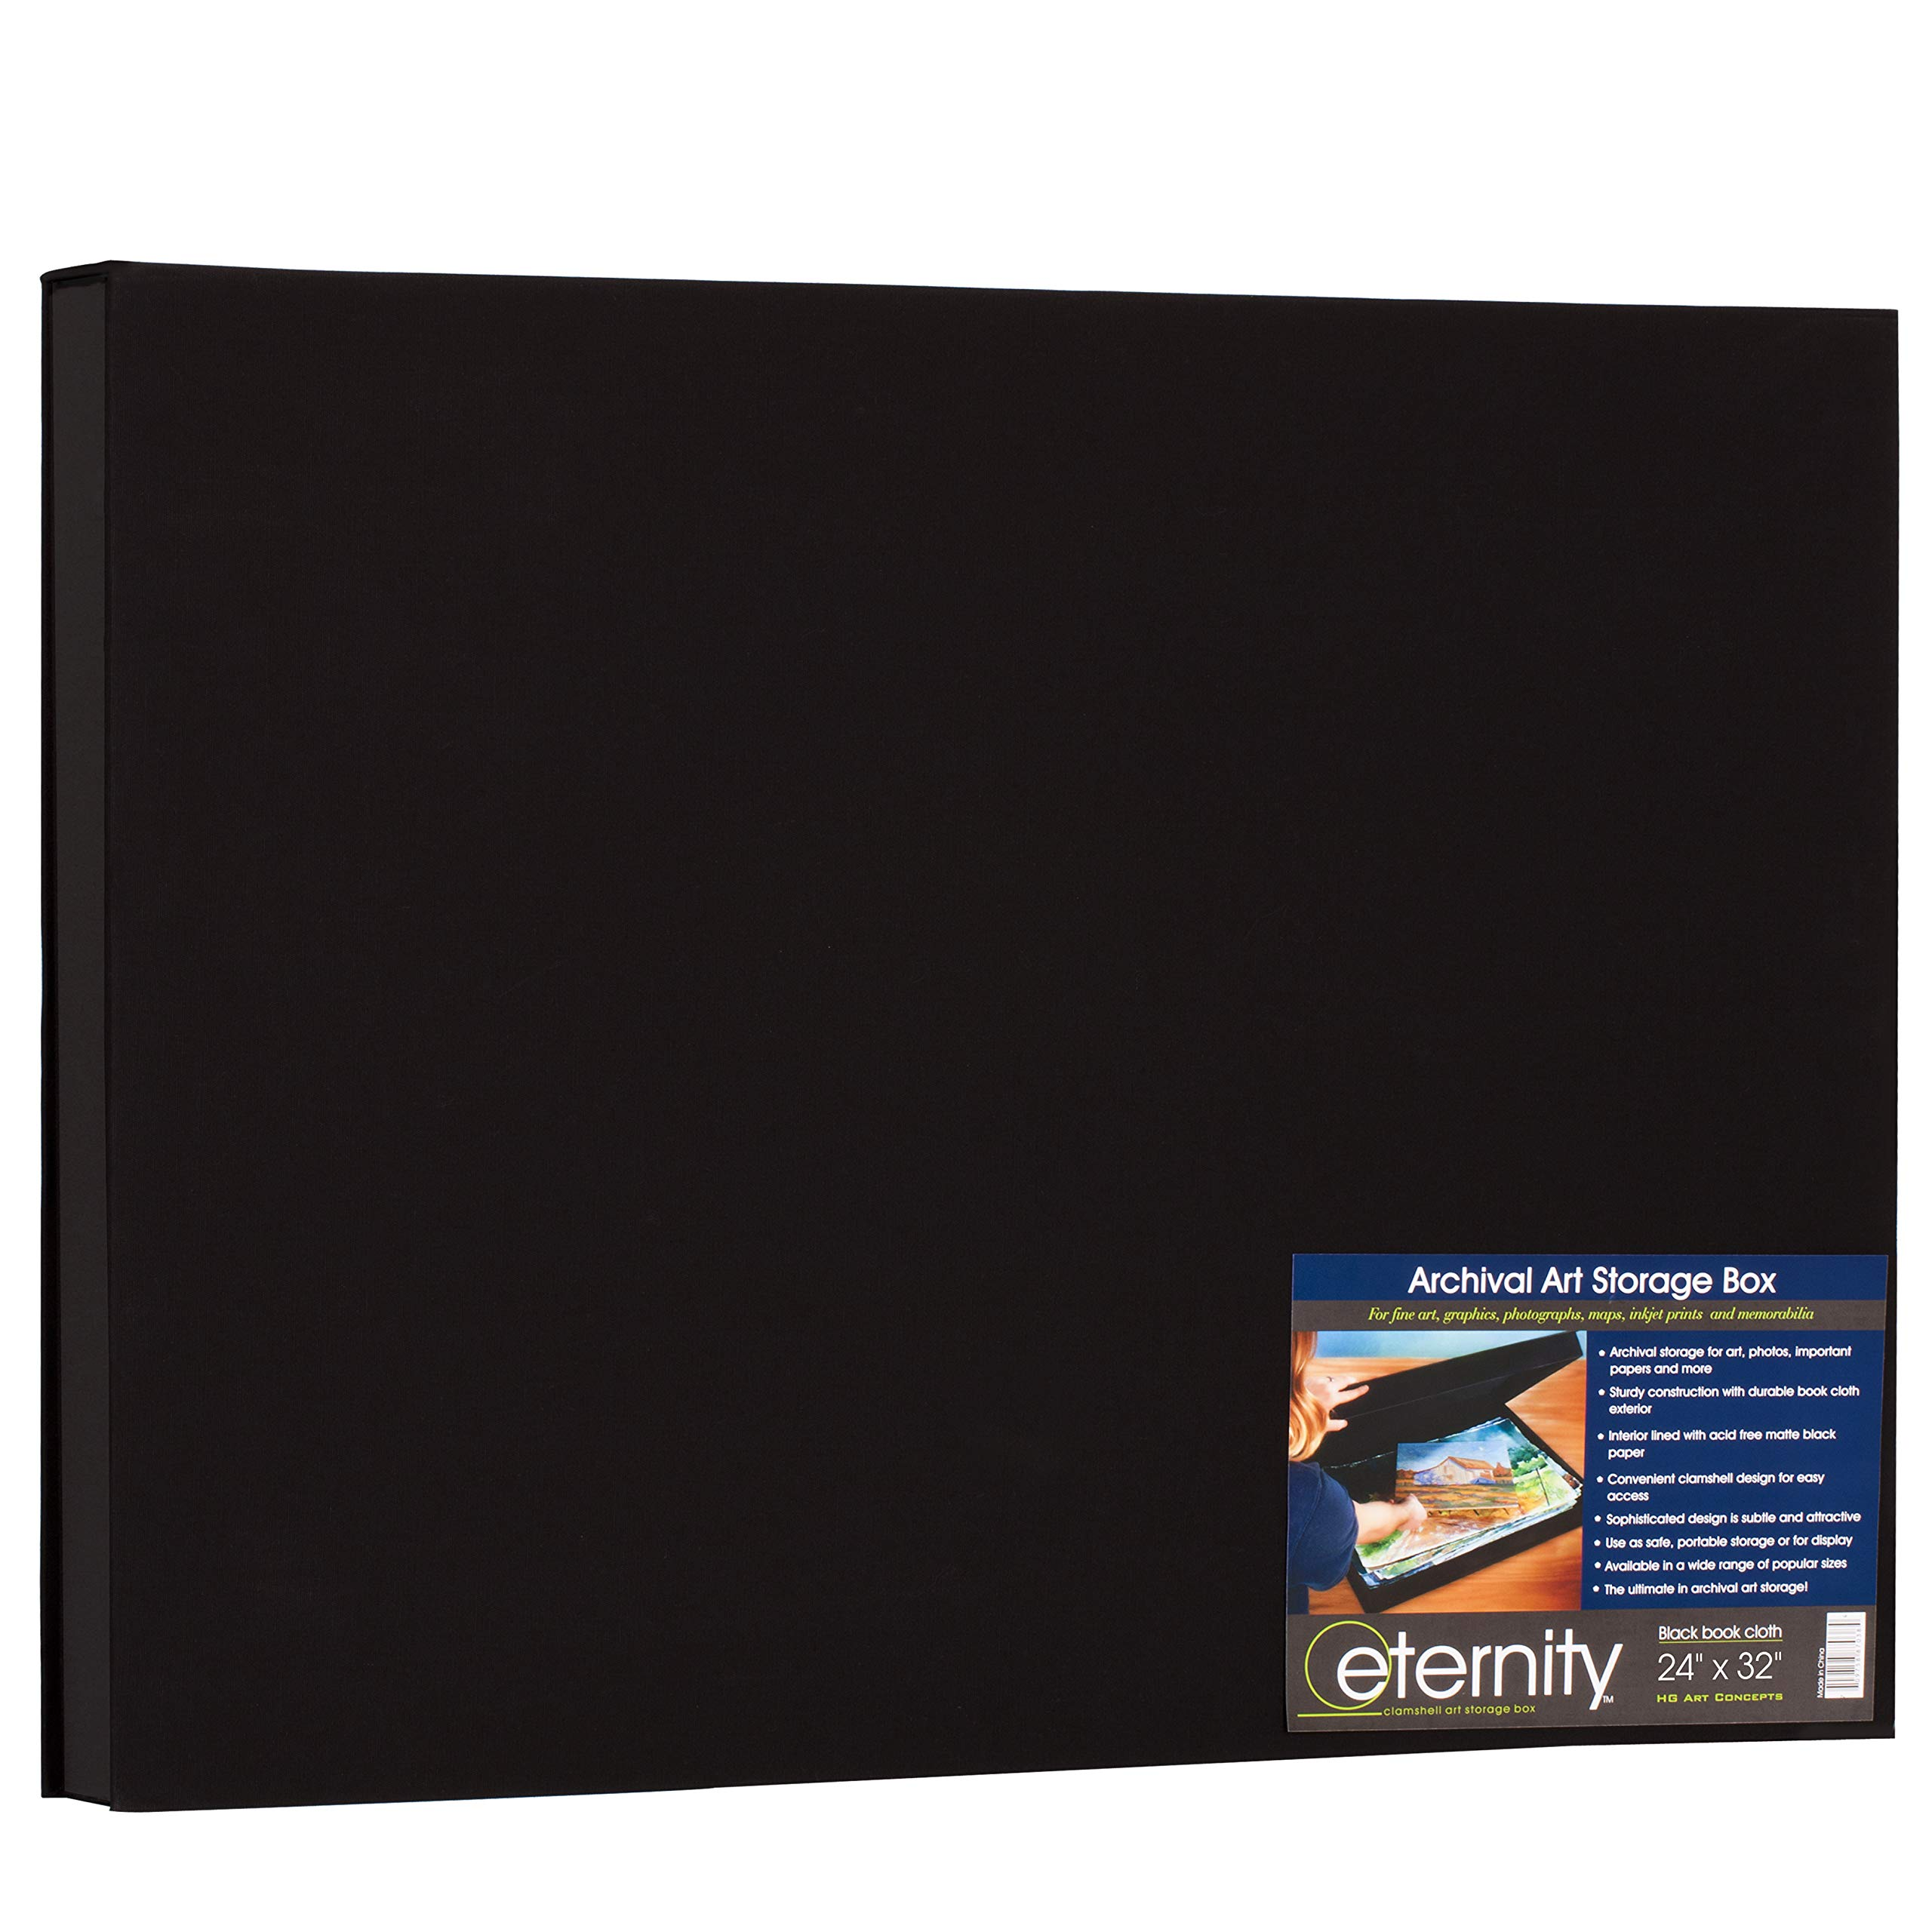 HG Concepts Art Photo Storage Box Eternity Archival Clamshell Box for Storing Artwork, Photos & Documents Deluxe Acid-Free Sturdy & Lined with Archival Paper - [Black - 24'' x 32''] by HG Concepts